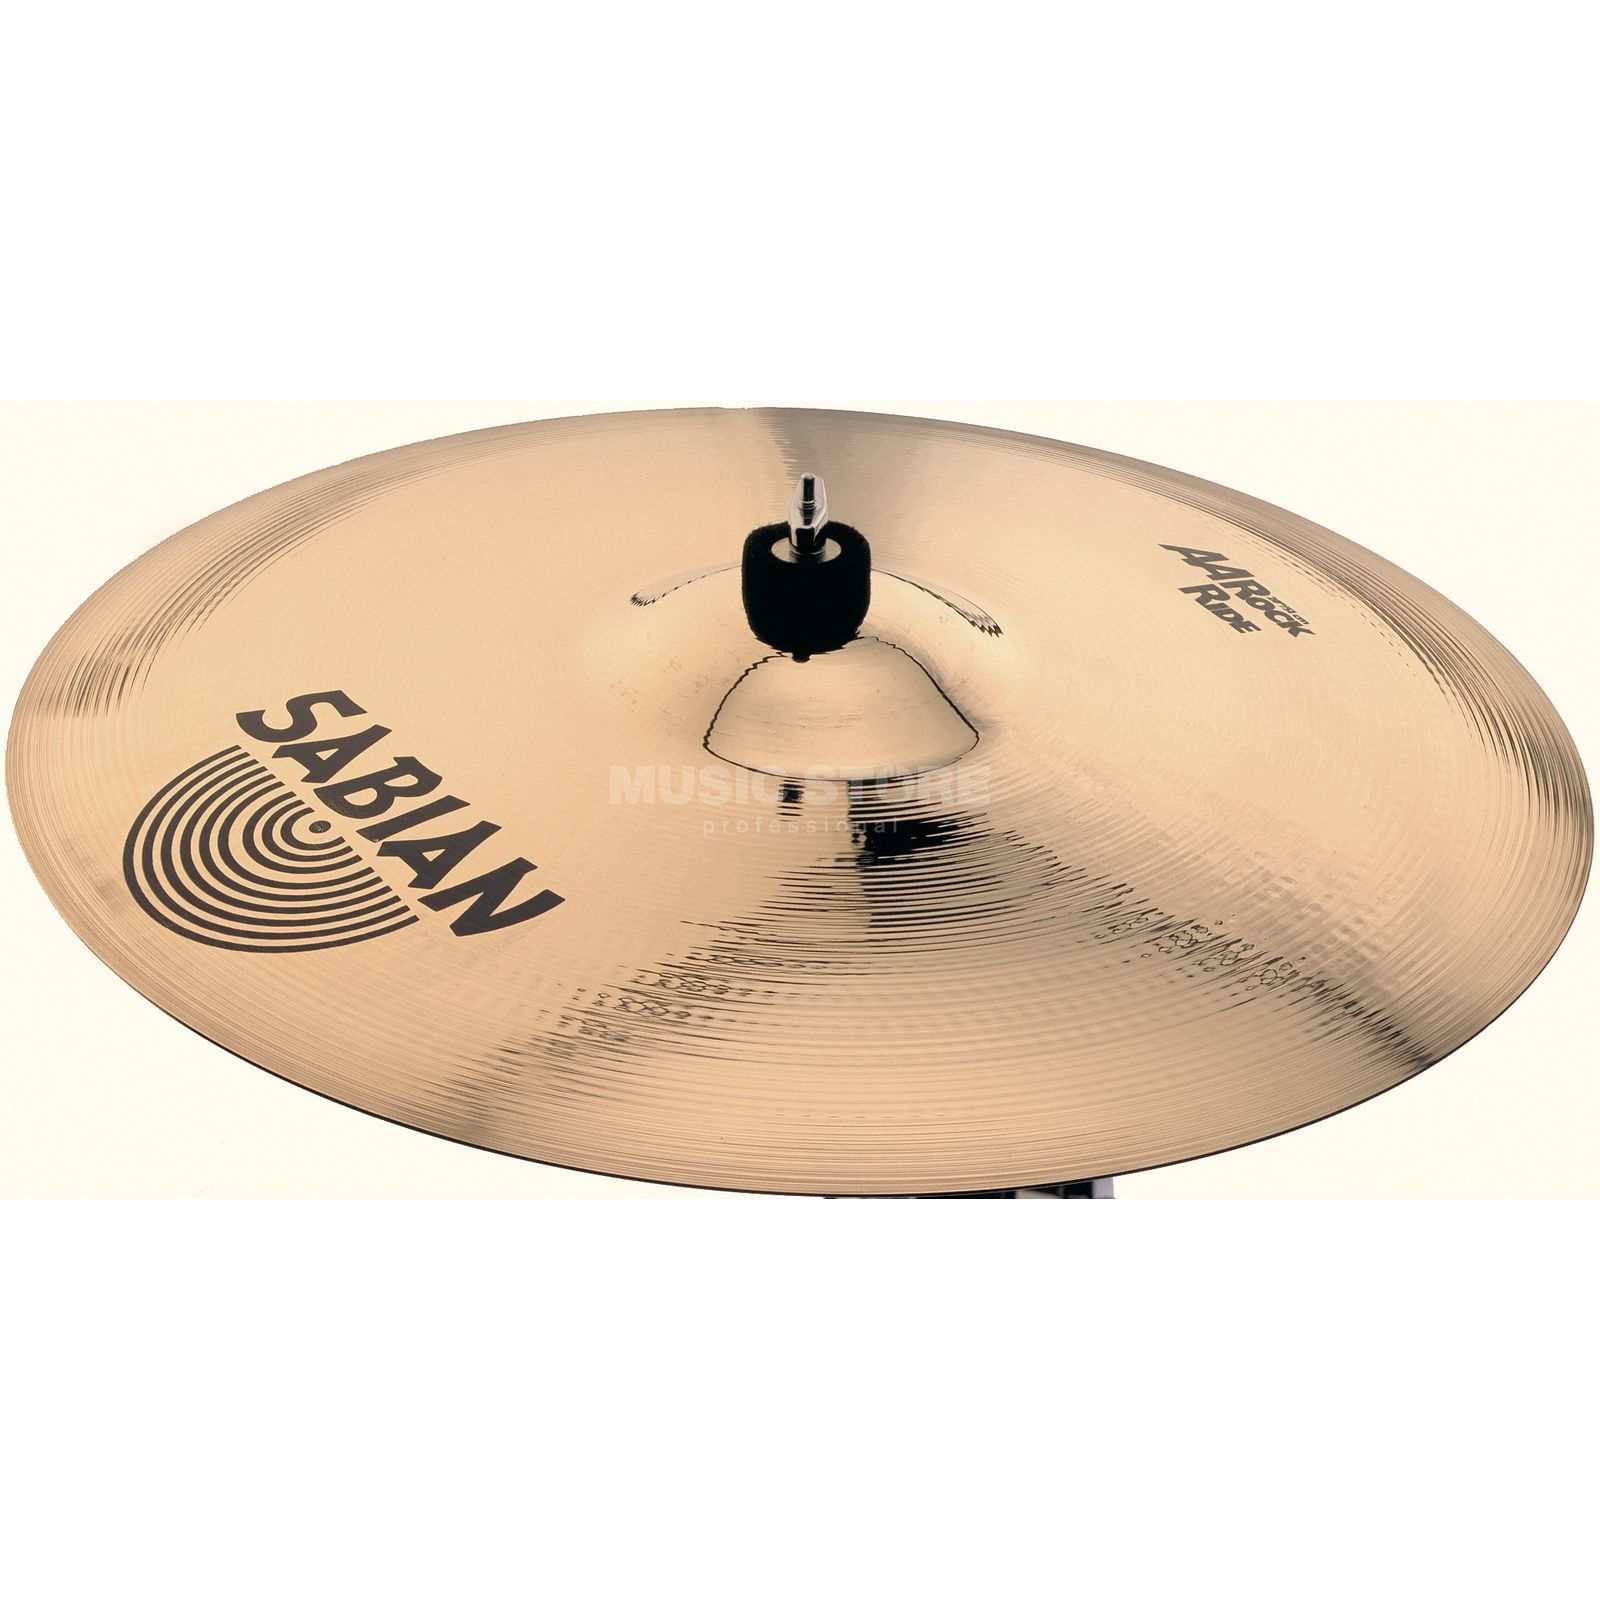 "Sabian AA Rock Ride 21"" Brilliant Finish Produktbild"